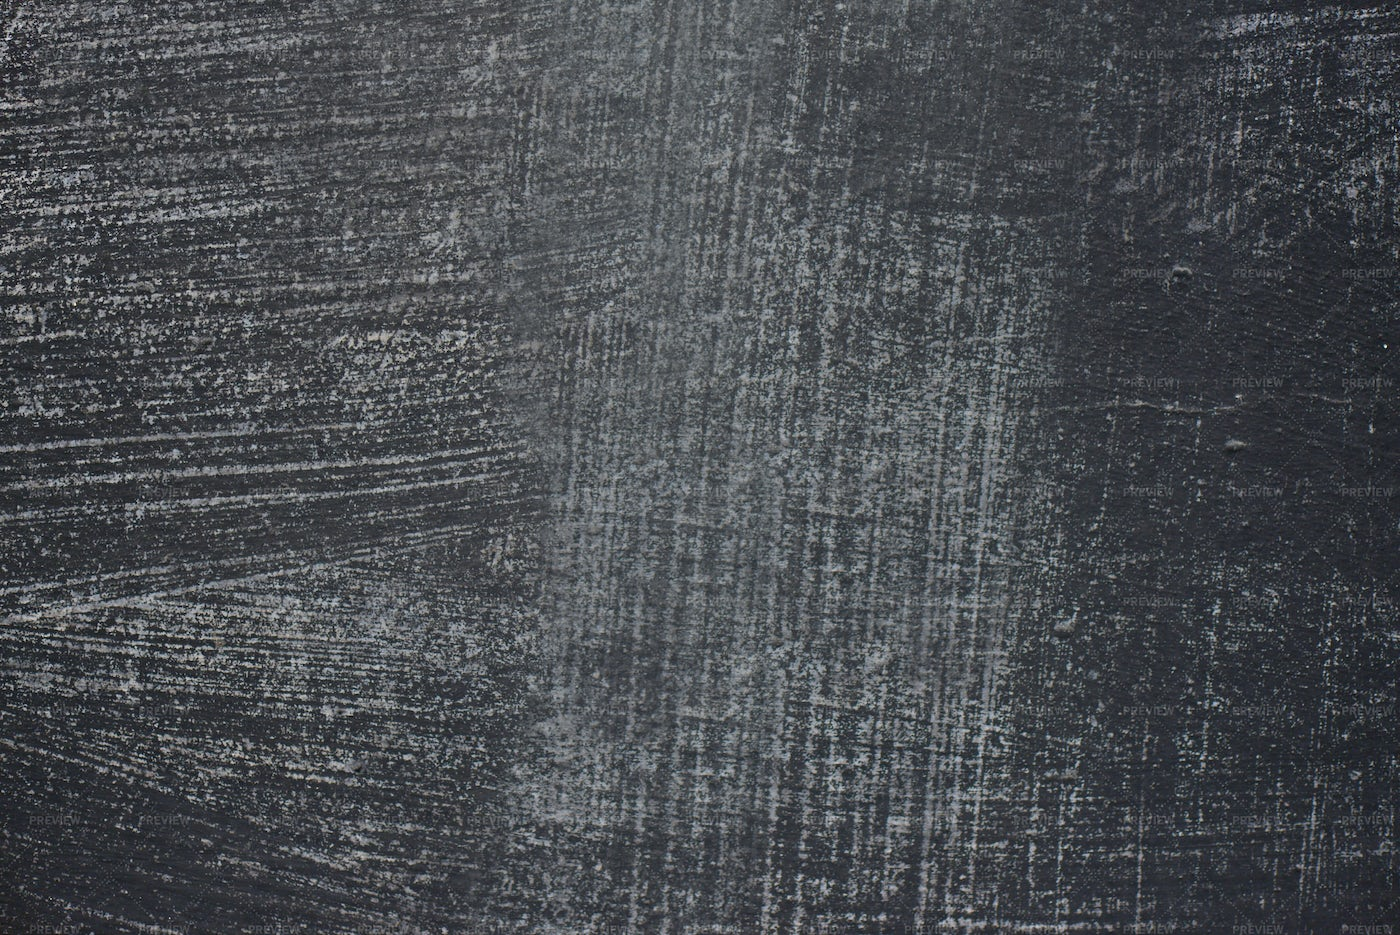 Gray Background With Stains: Stock Photos